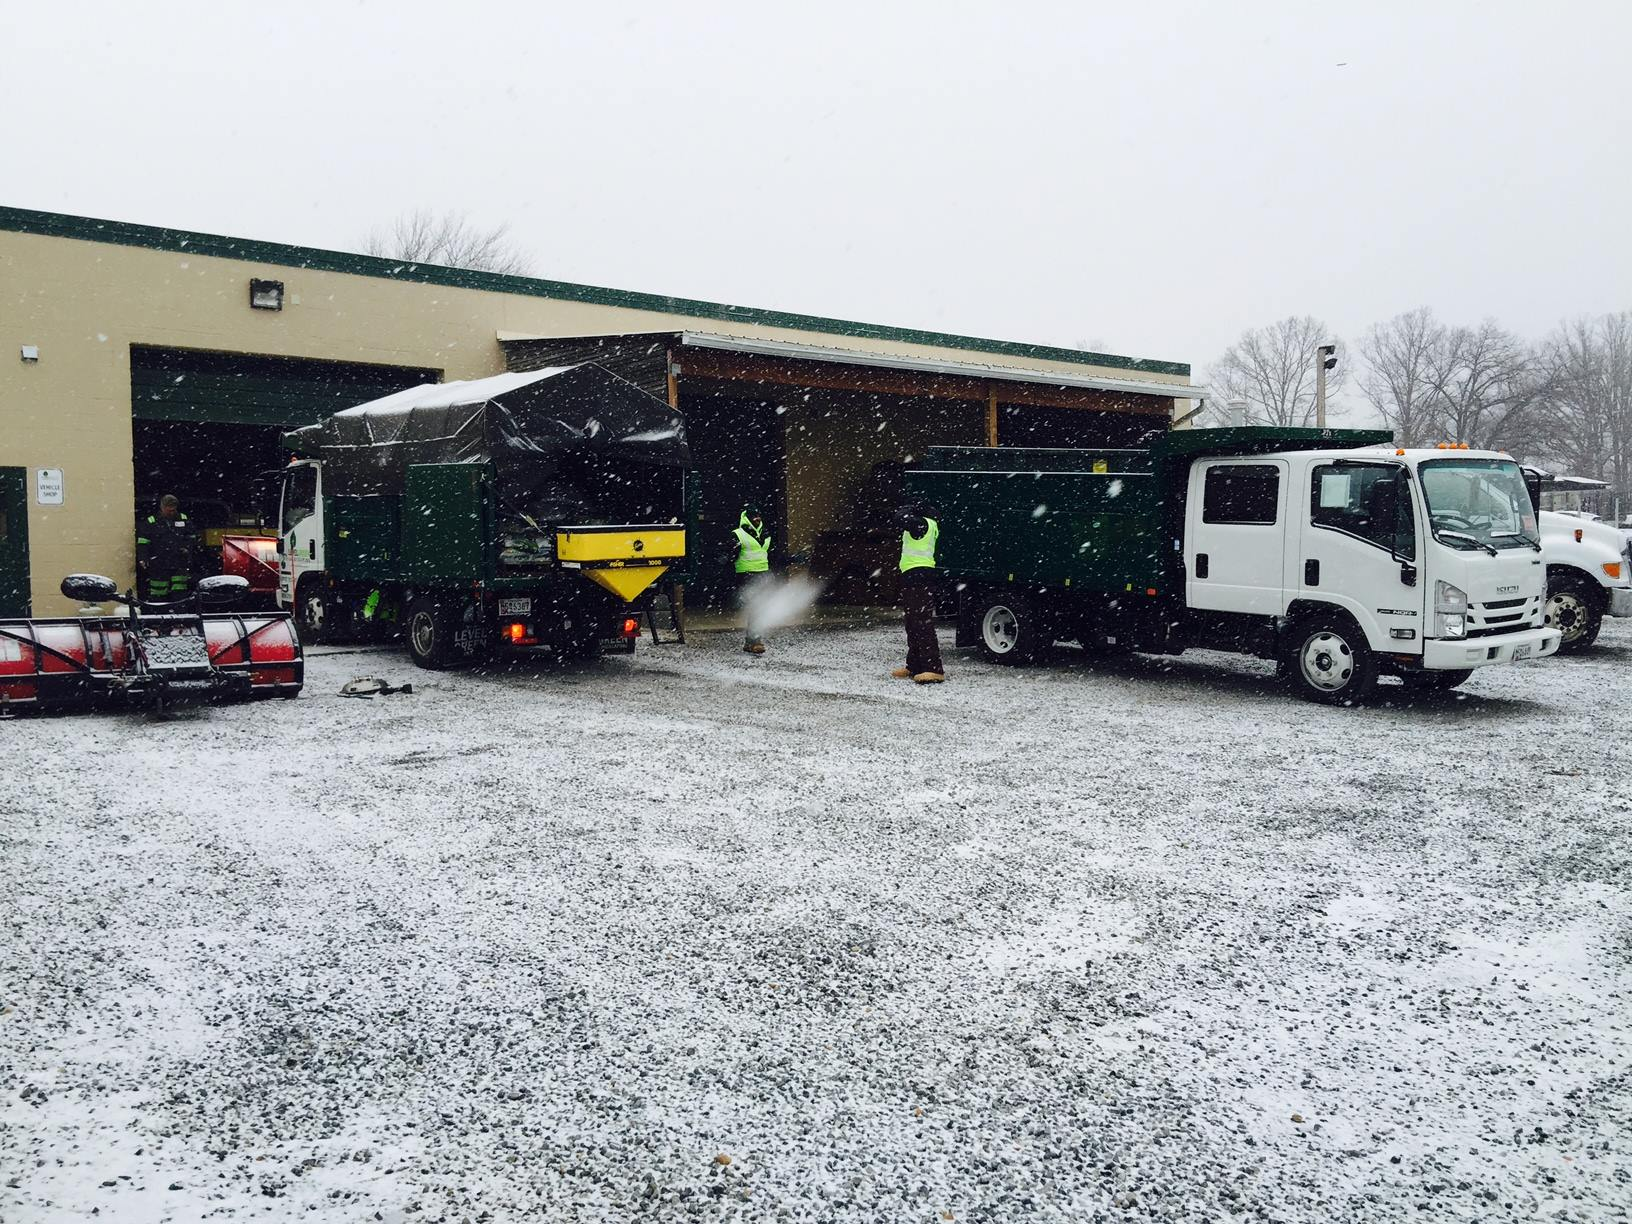 A Behind The Scenes Look at Year-round Snow & Ice Preparation